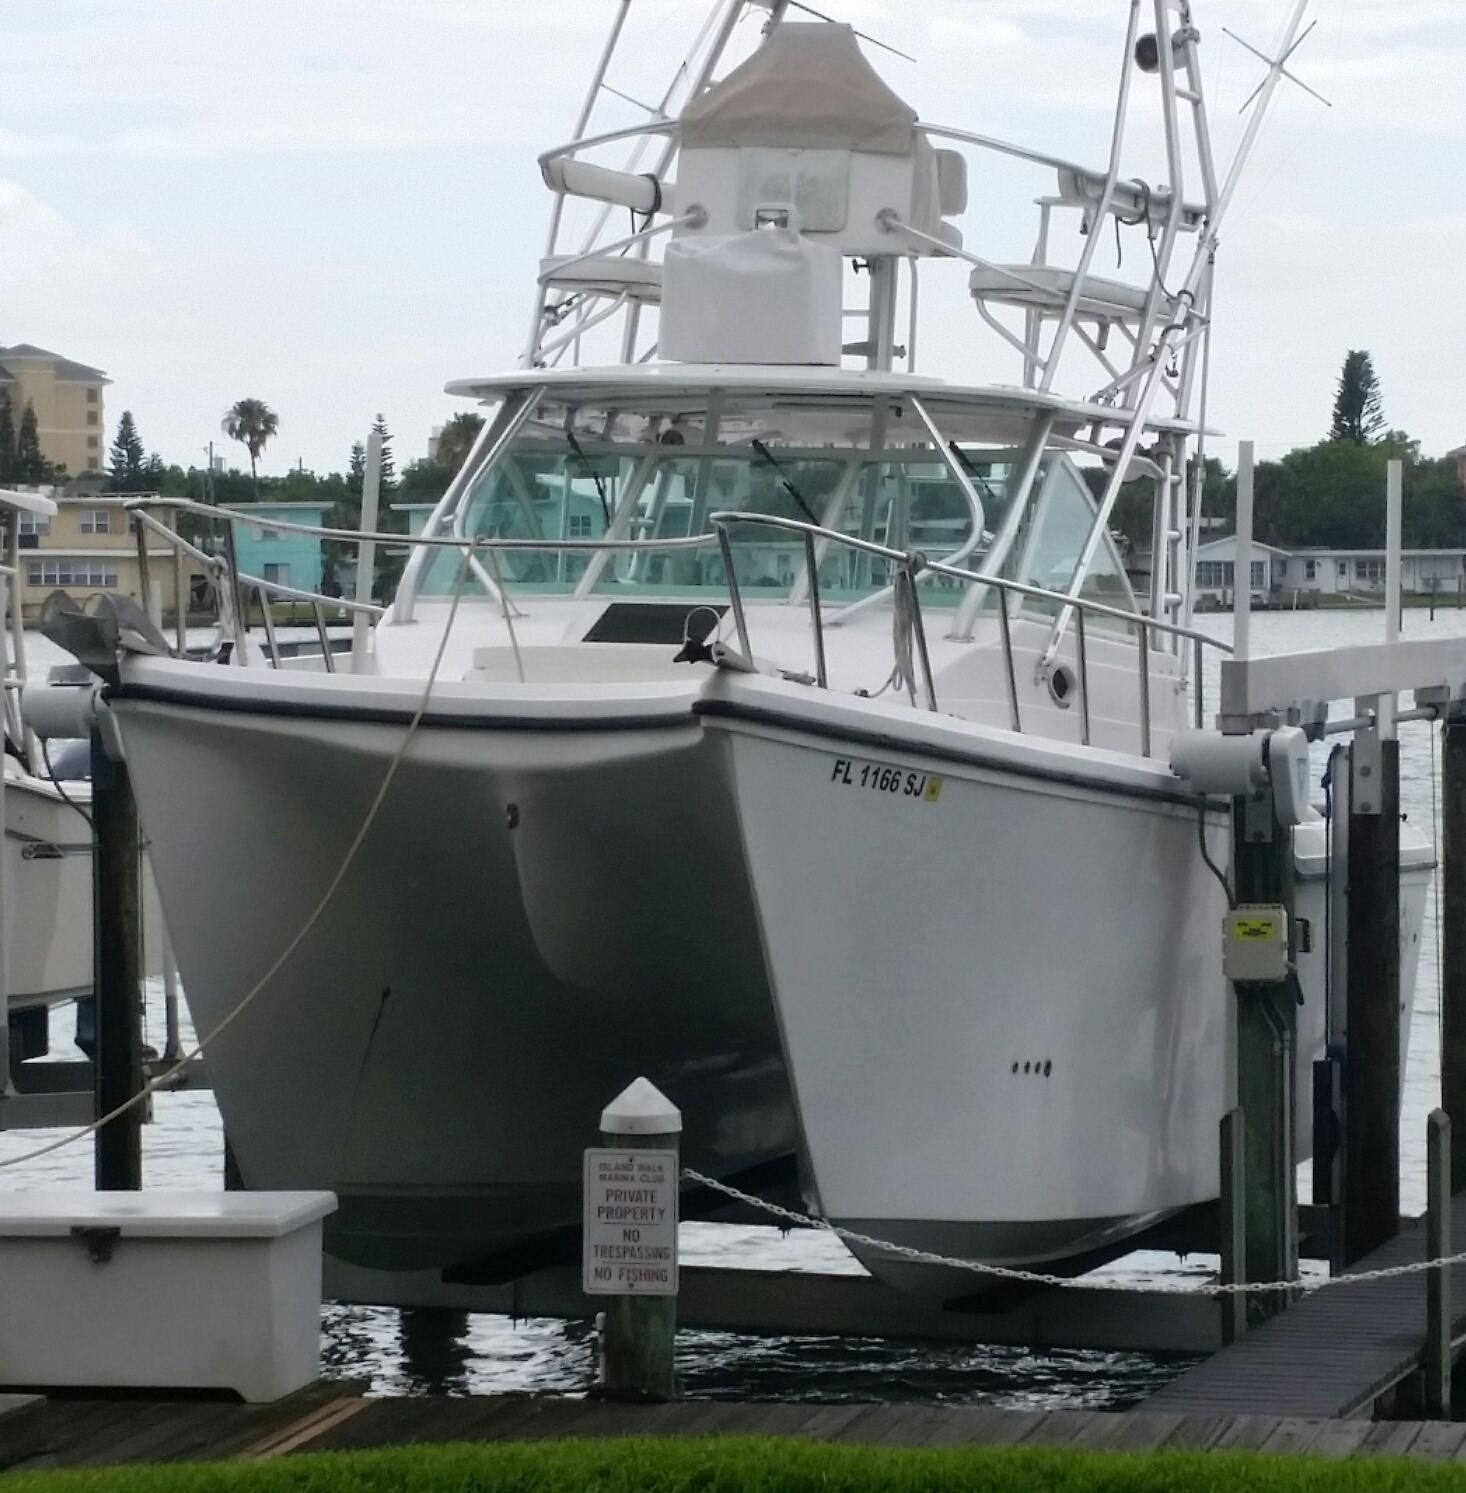 Suzuki Outboards For Sale >> 2008 Baha Cruisers 340 King Cat 34' Power Boat For Sale